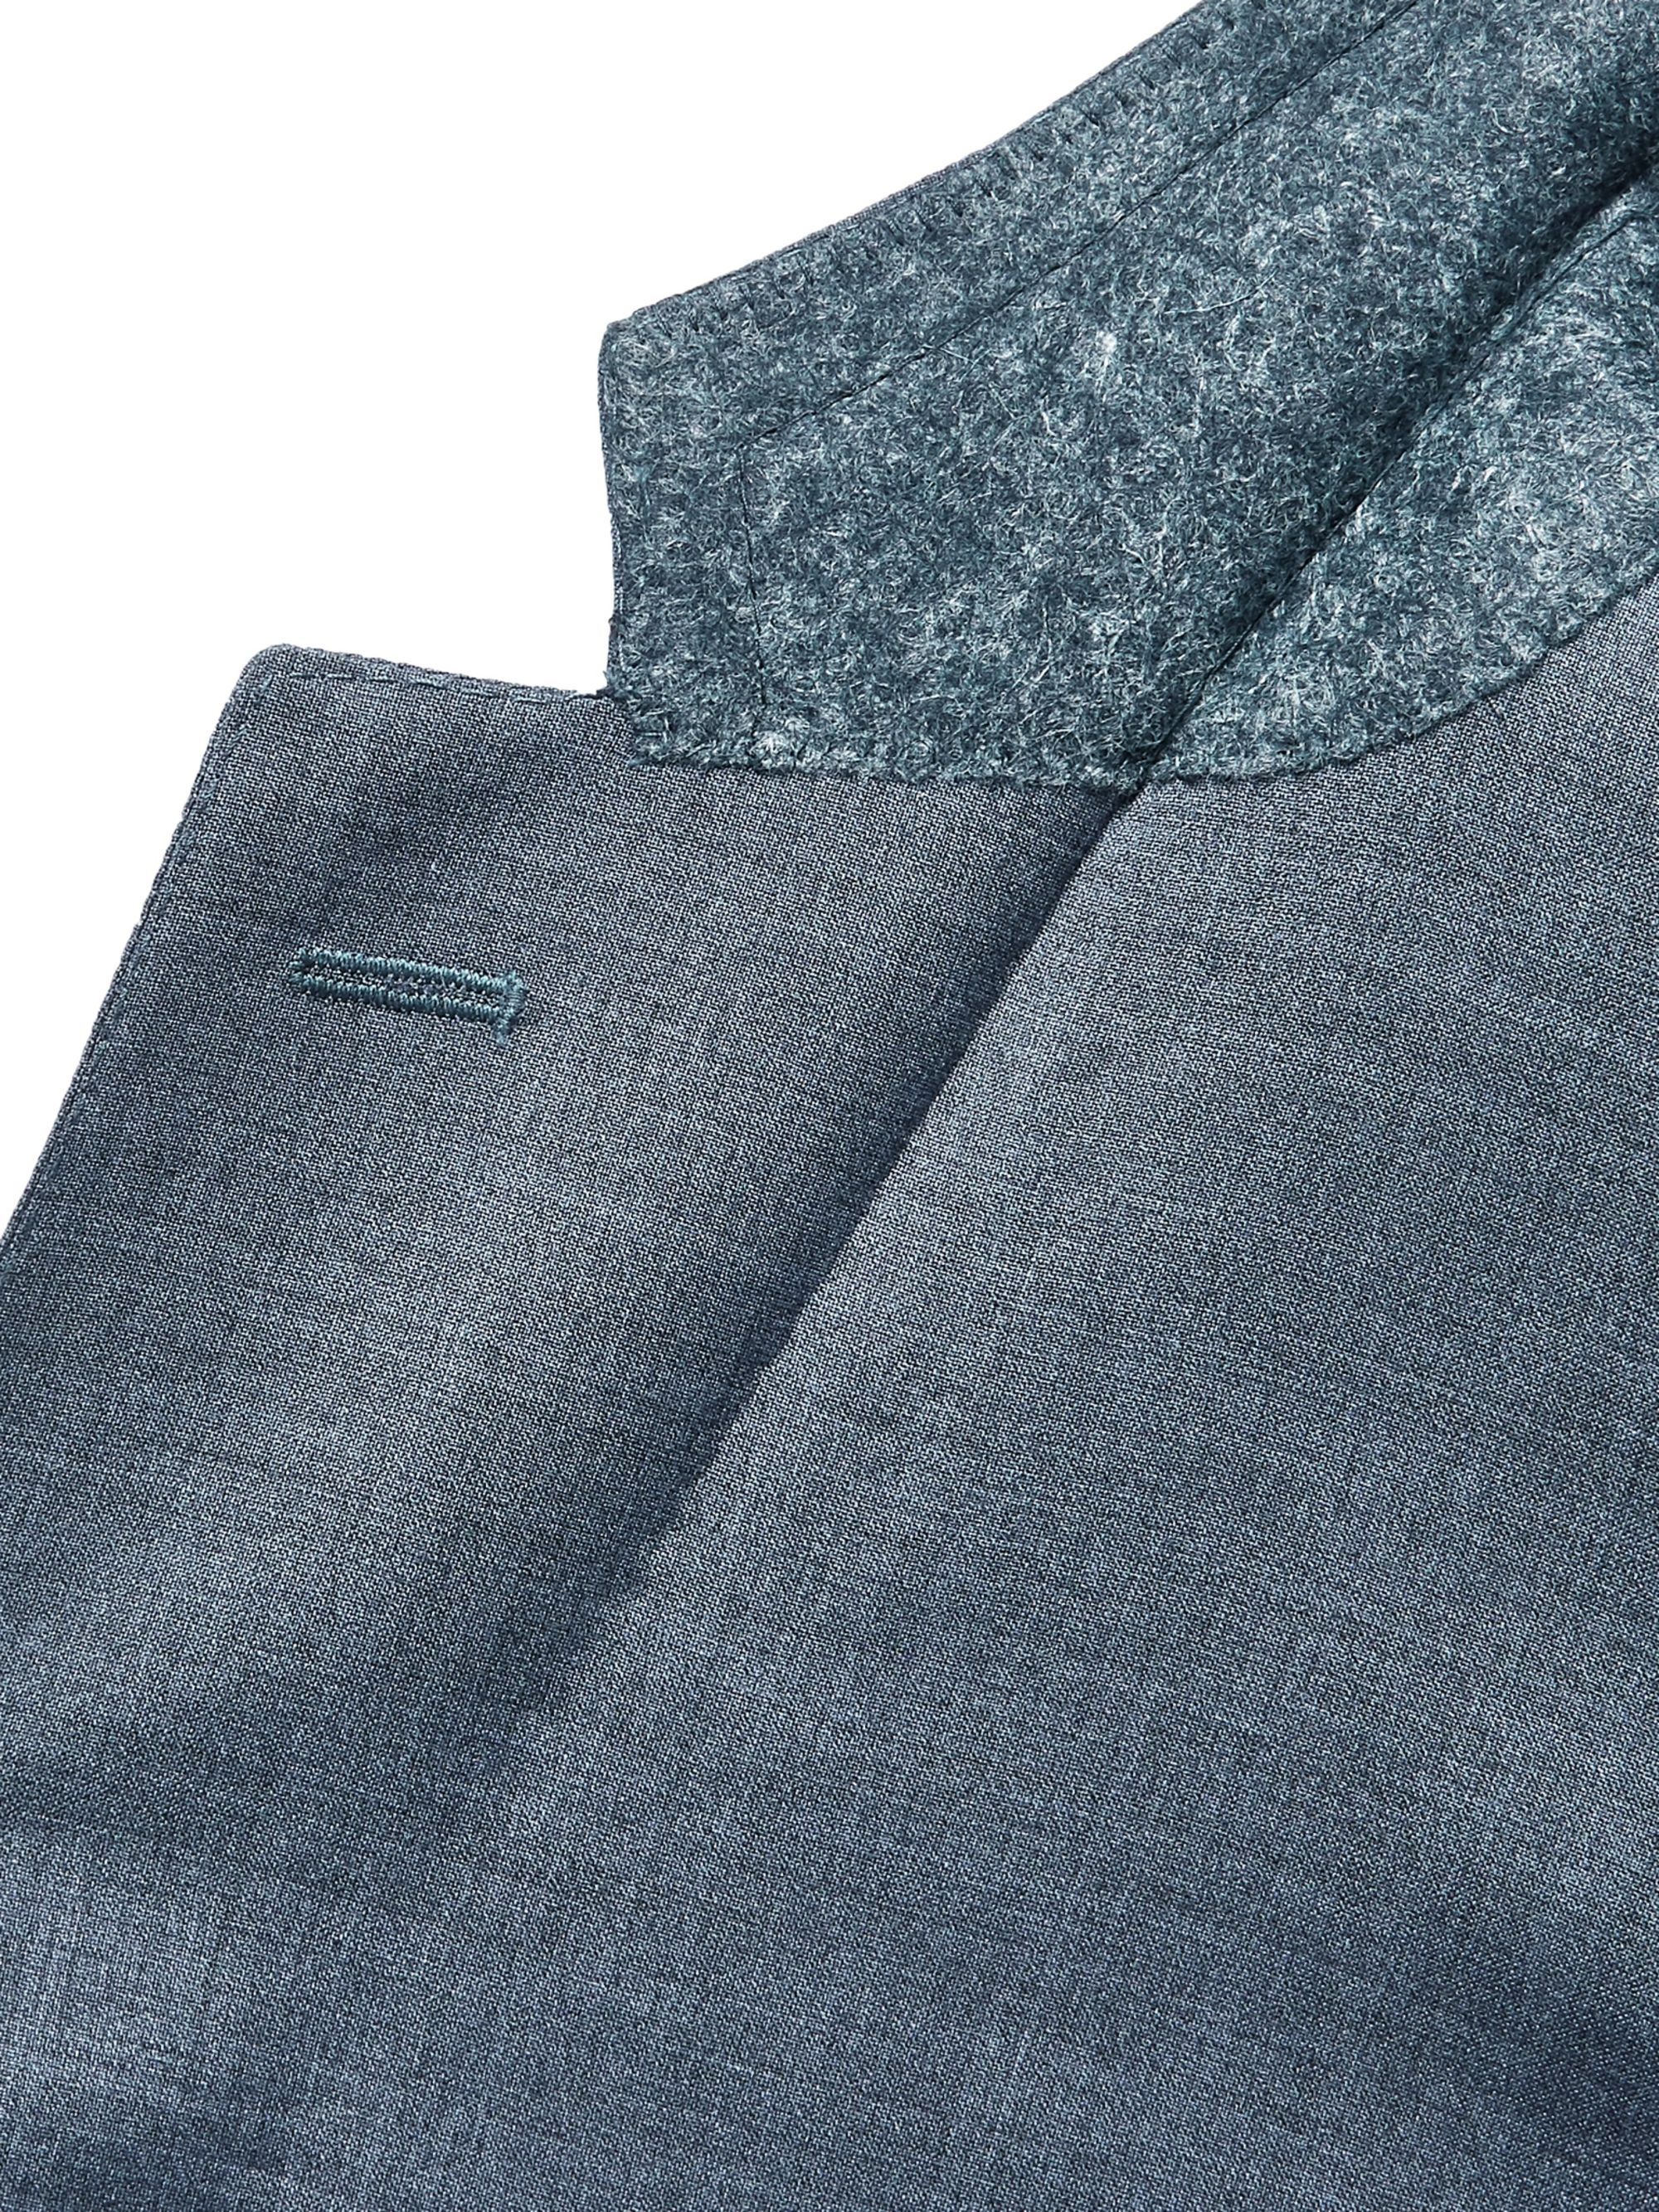 Canali Storm-Blue Slim-Fit Wool Suit Jacket